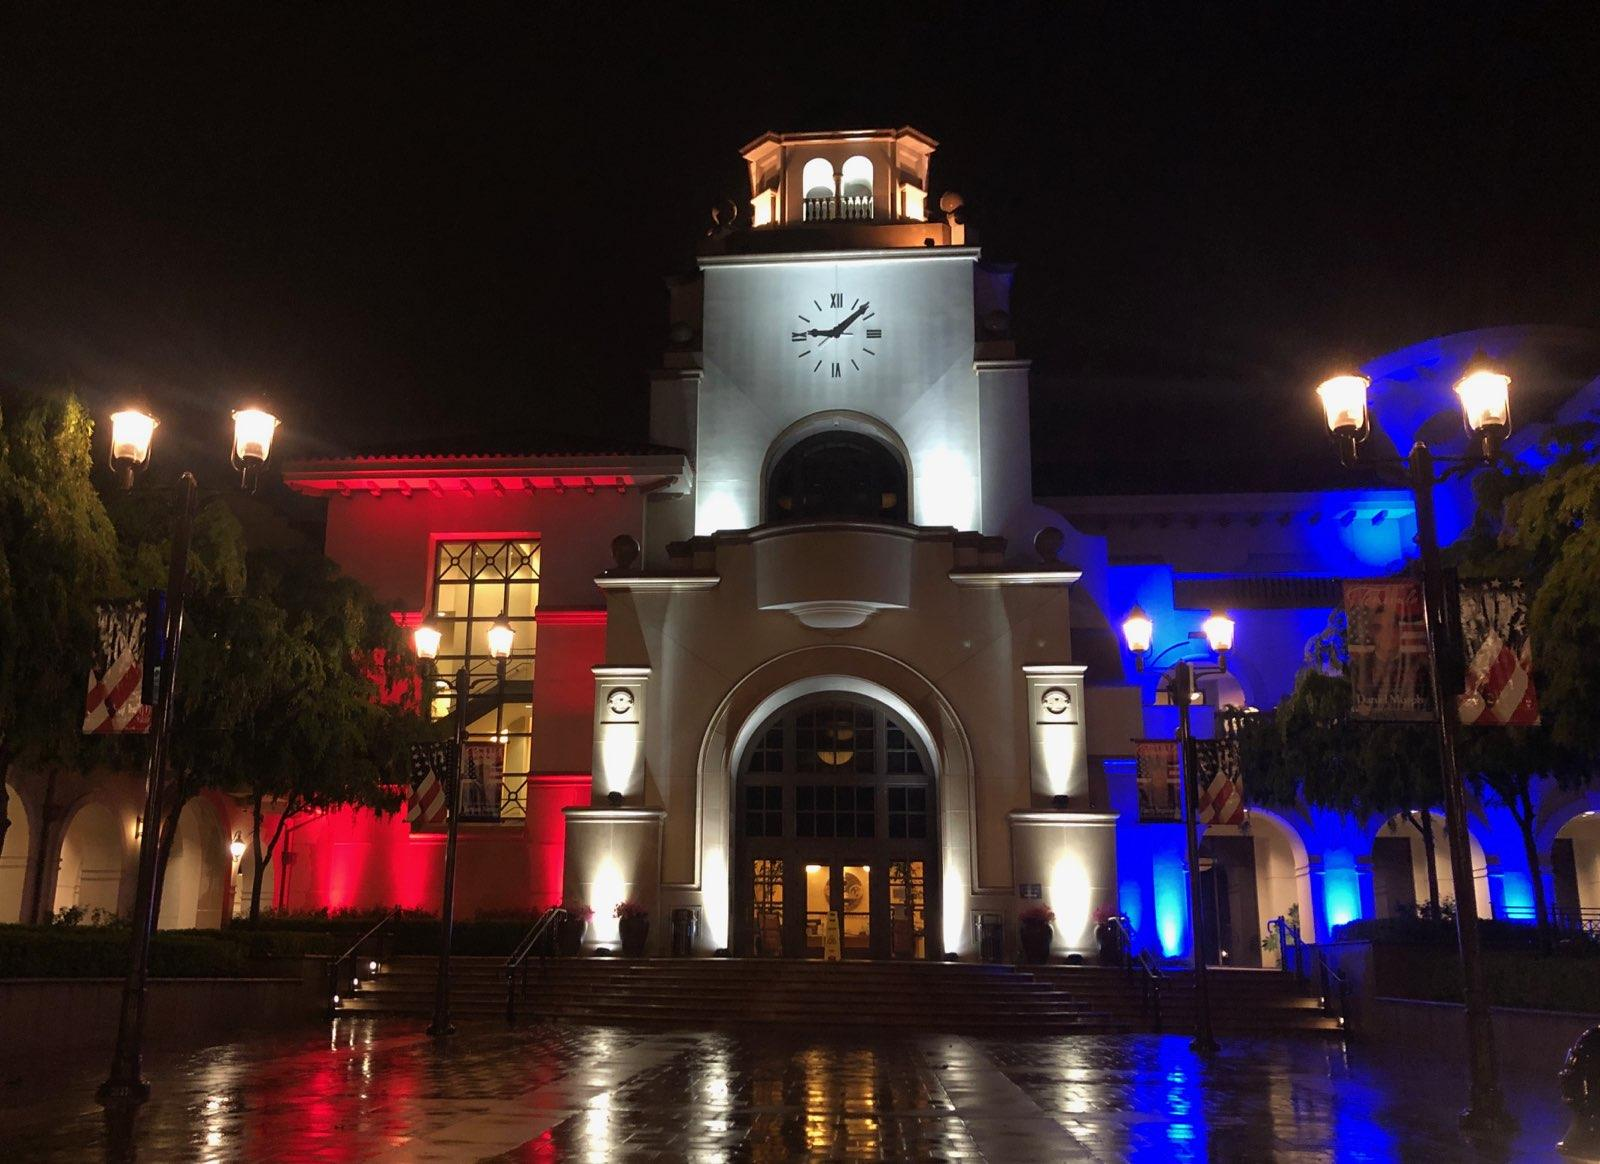 City Hall lights up red,white and blue nightly as beacon of hope